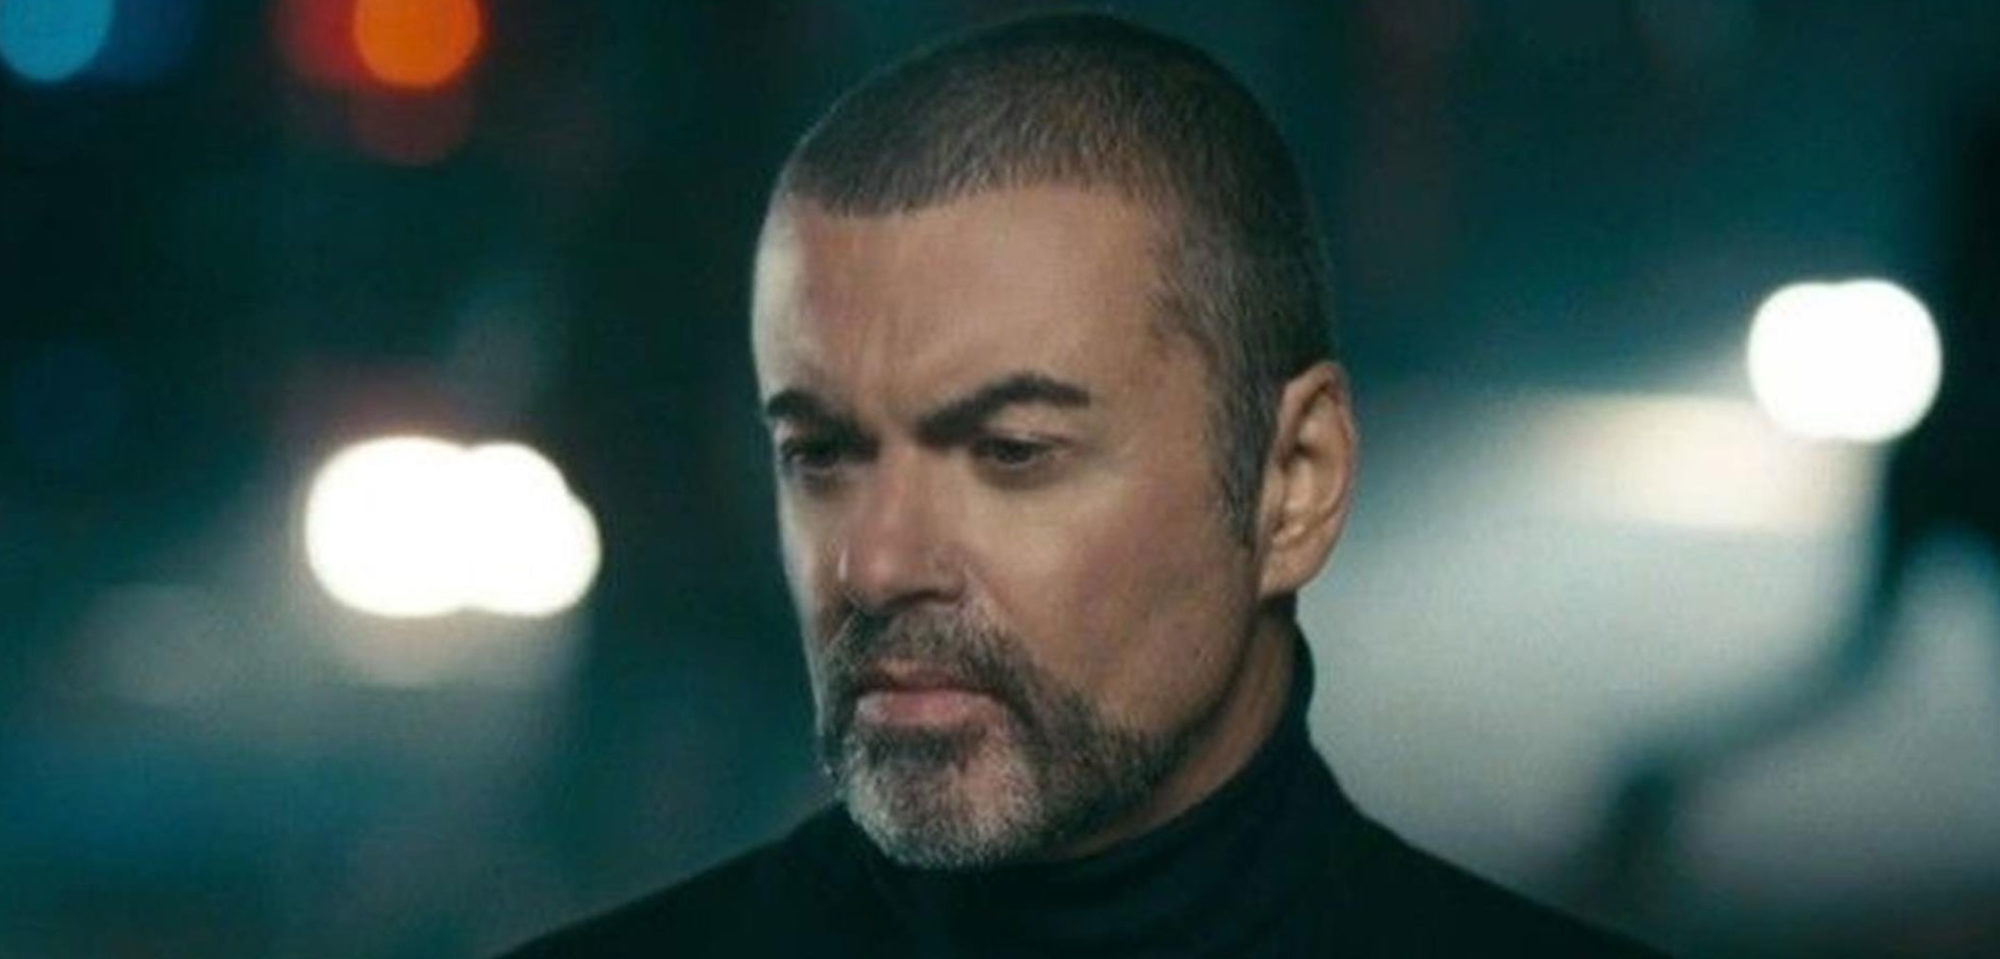 George Michael documentary